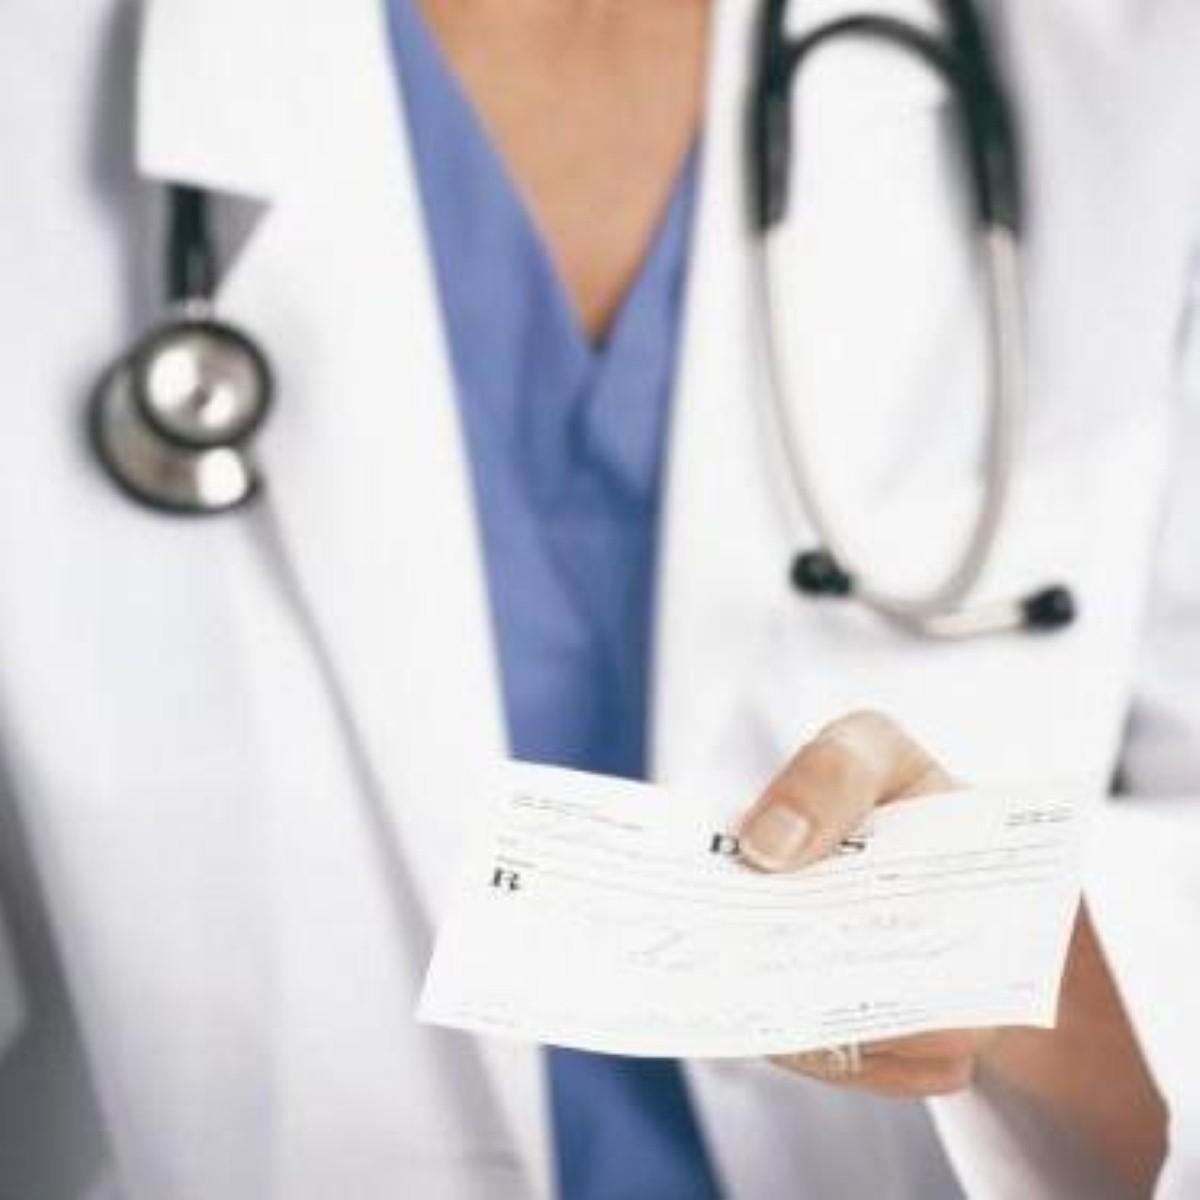 1,000 doctors oppose competition rules